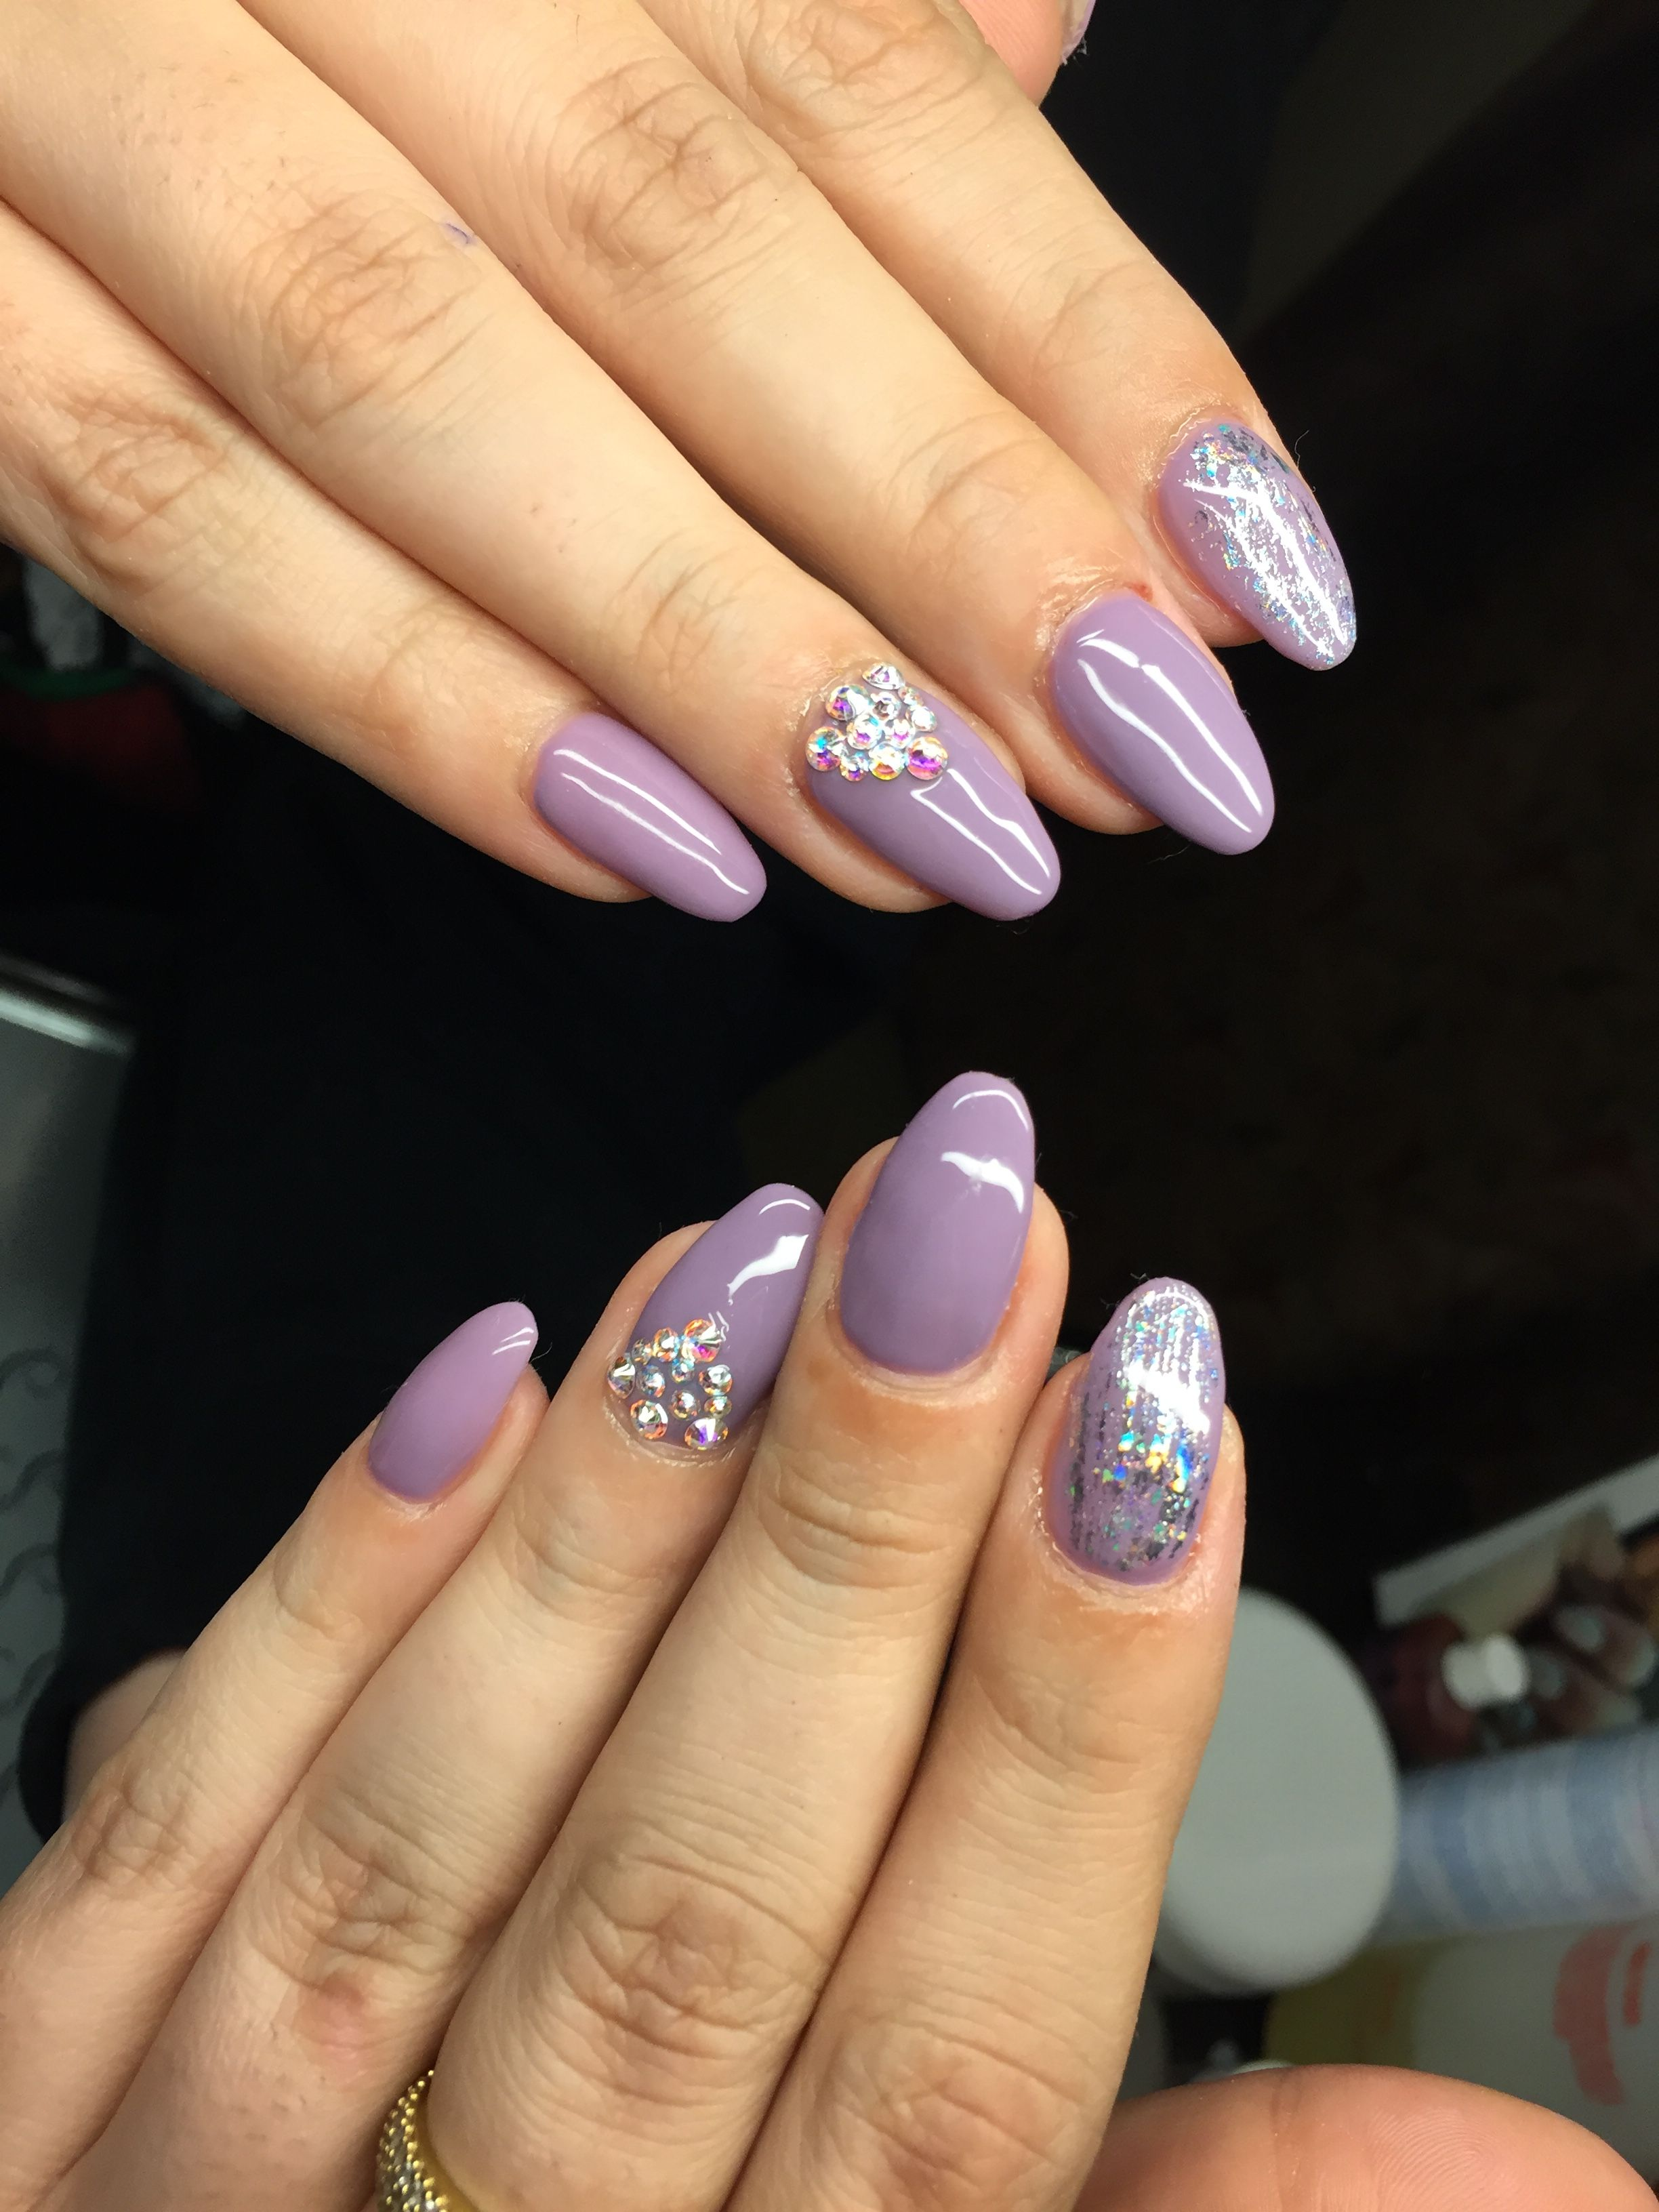 Almond acrylic nails spring purple Swarovski stones follow on ...